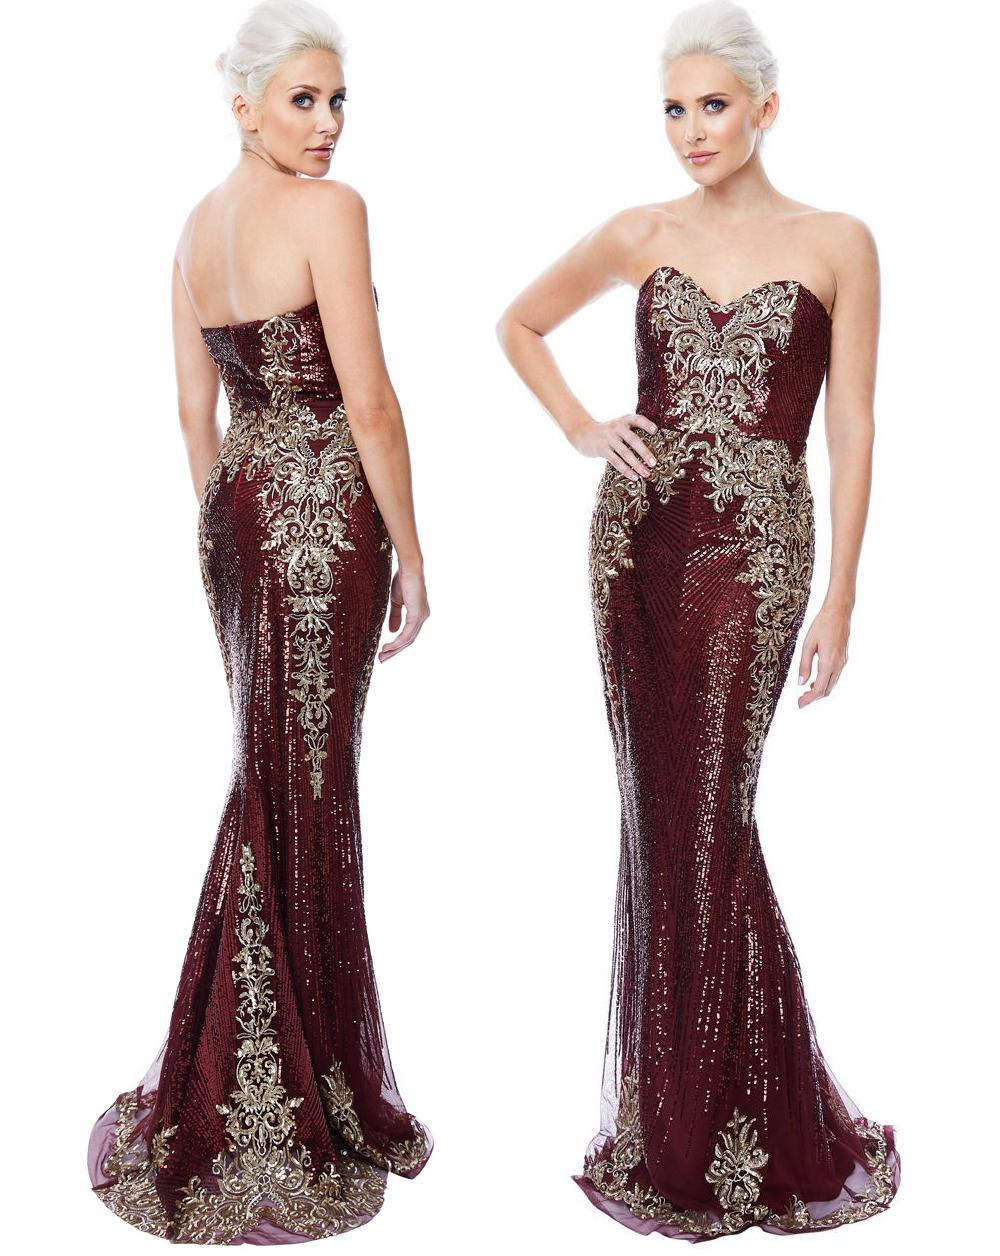 10202 Designer gown. Stunning strapless sequin evening gown size 8